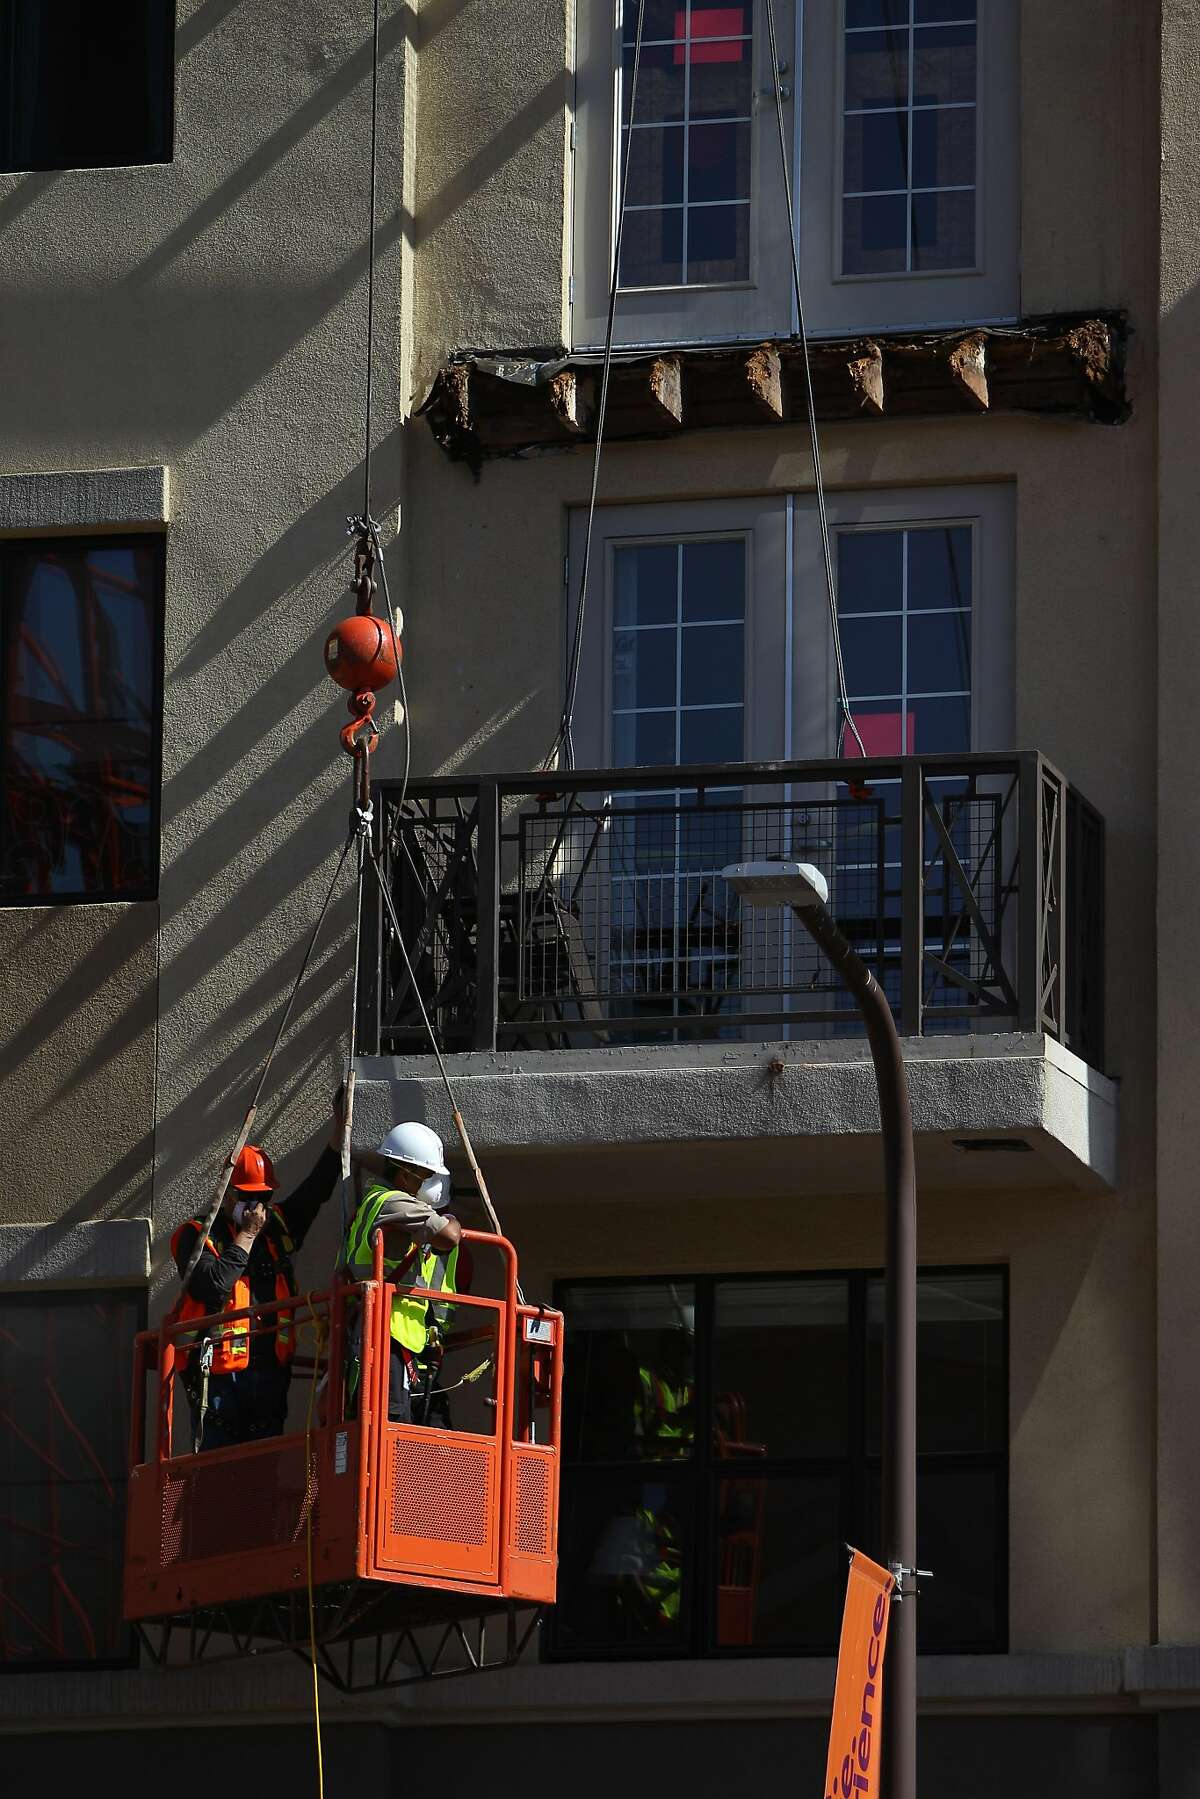 A balcony below the one that collapsed is worked on at 2020 Kittredge Street in Berkeley, California, on Tuesday, June 16, 2015. The collapse, which took place in the early hours of Tuesday, killed 6 and injured others.